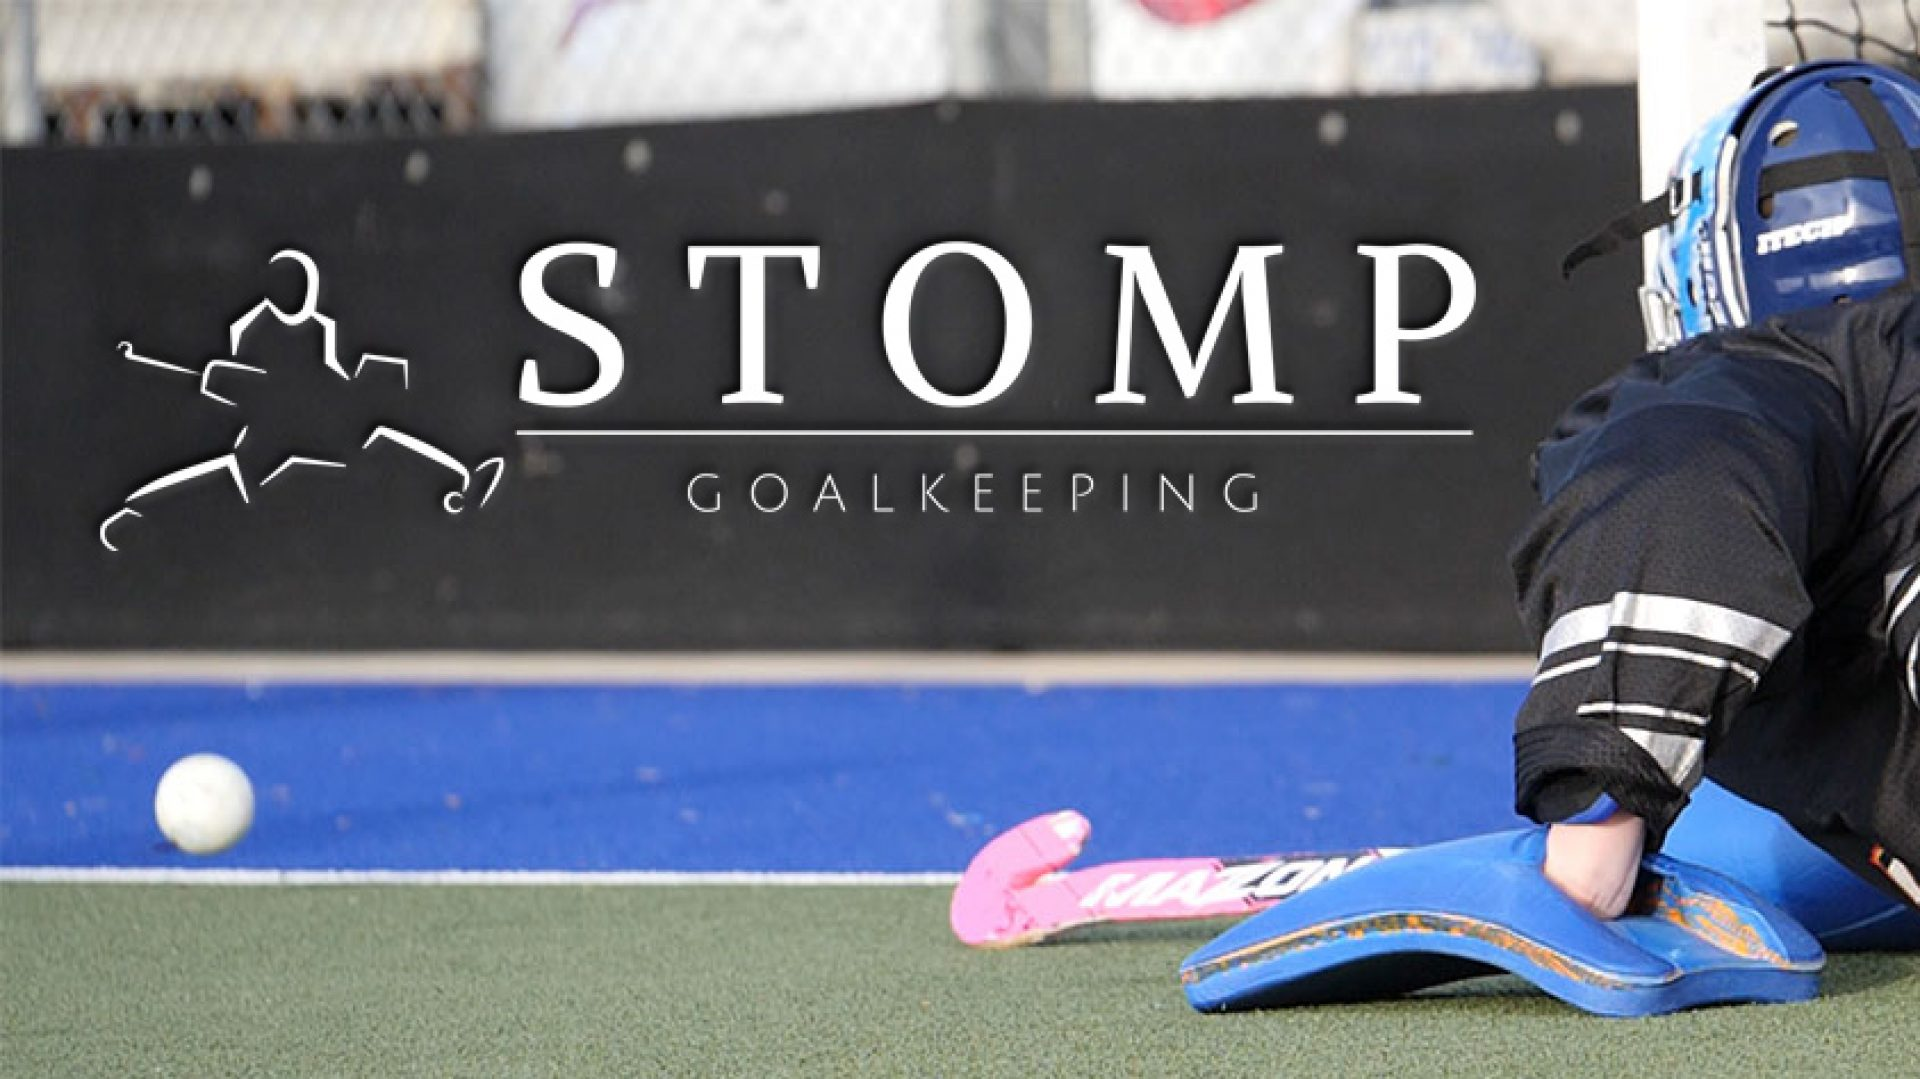 Stomp Goalkeeping